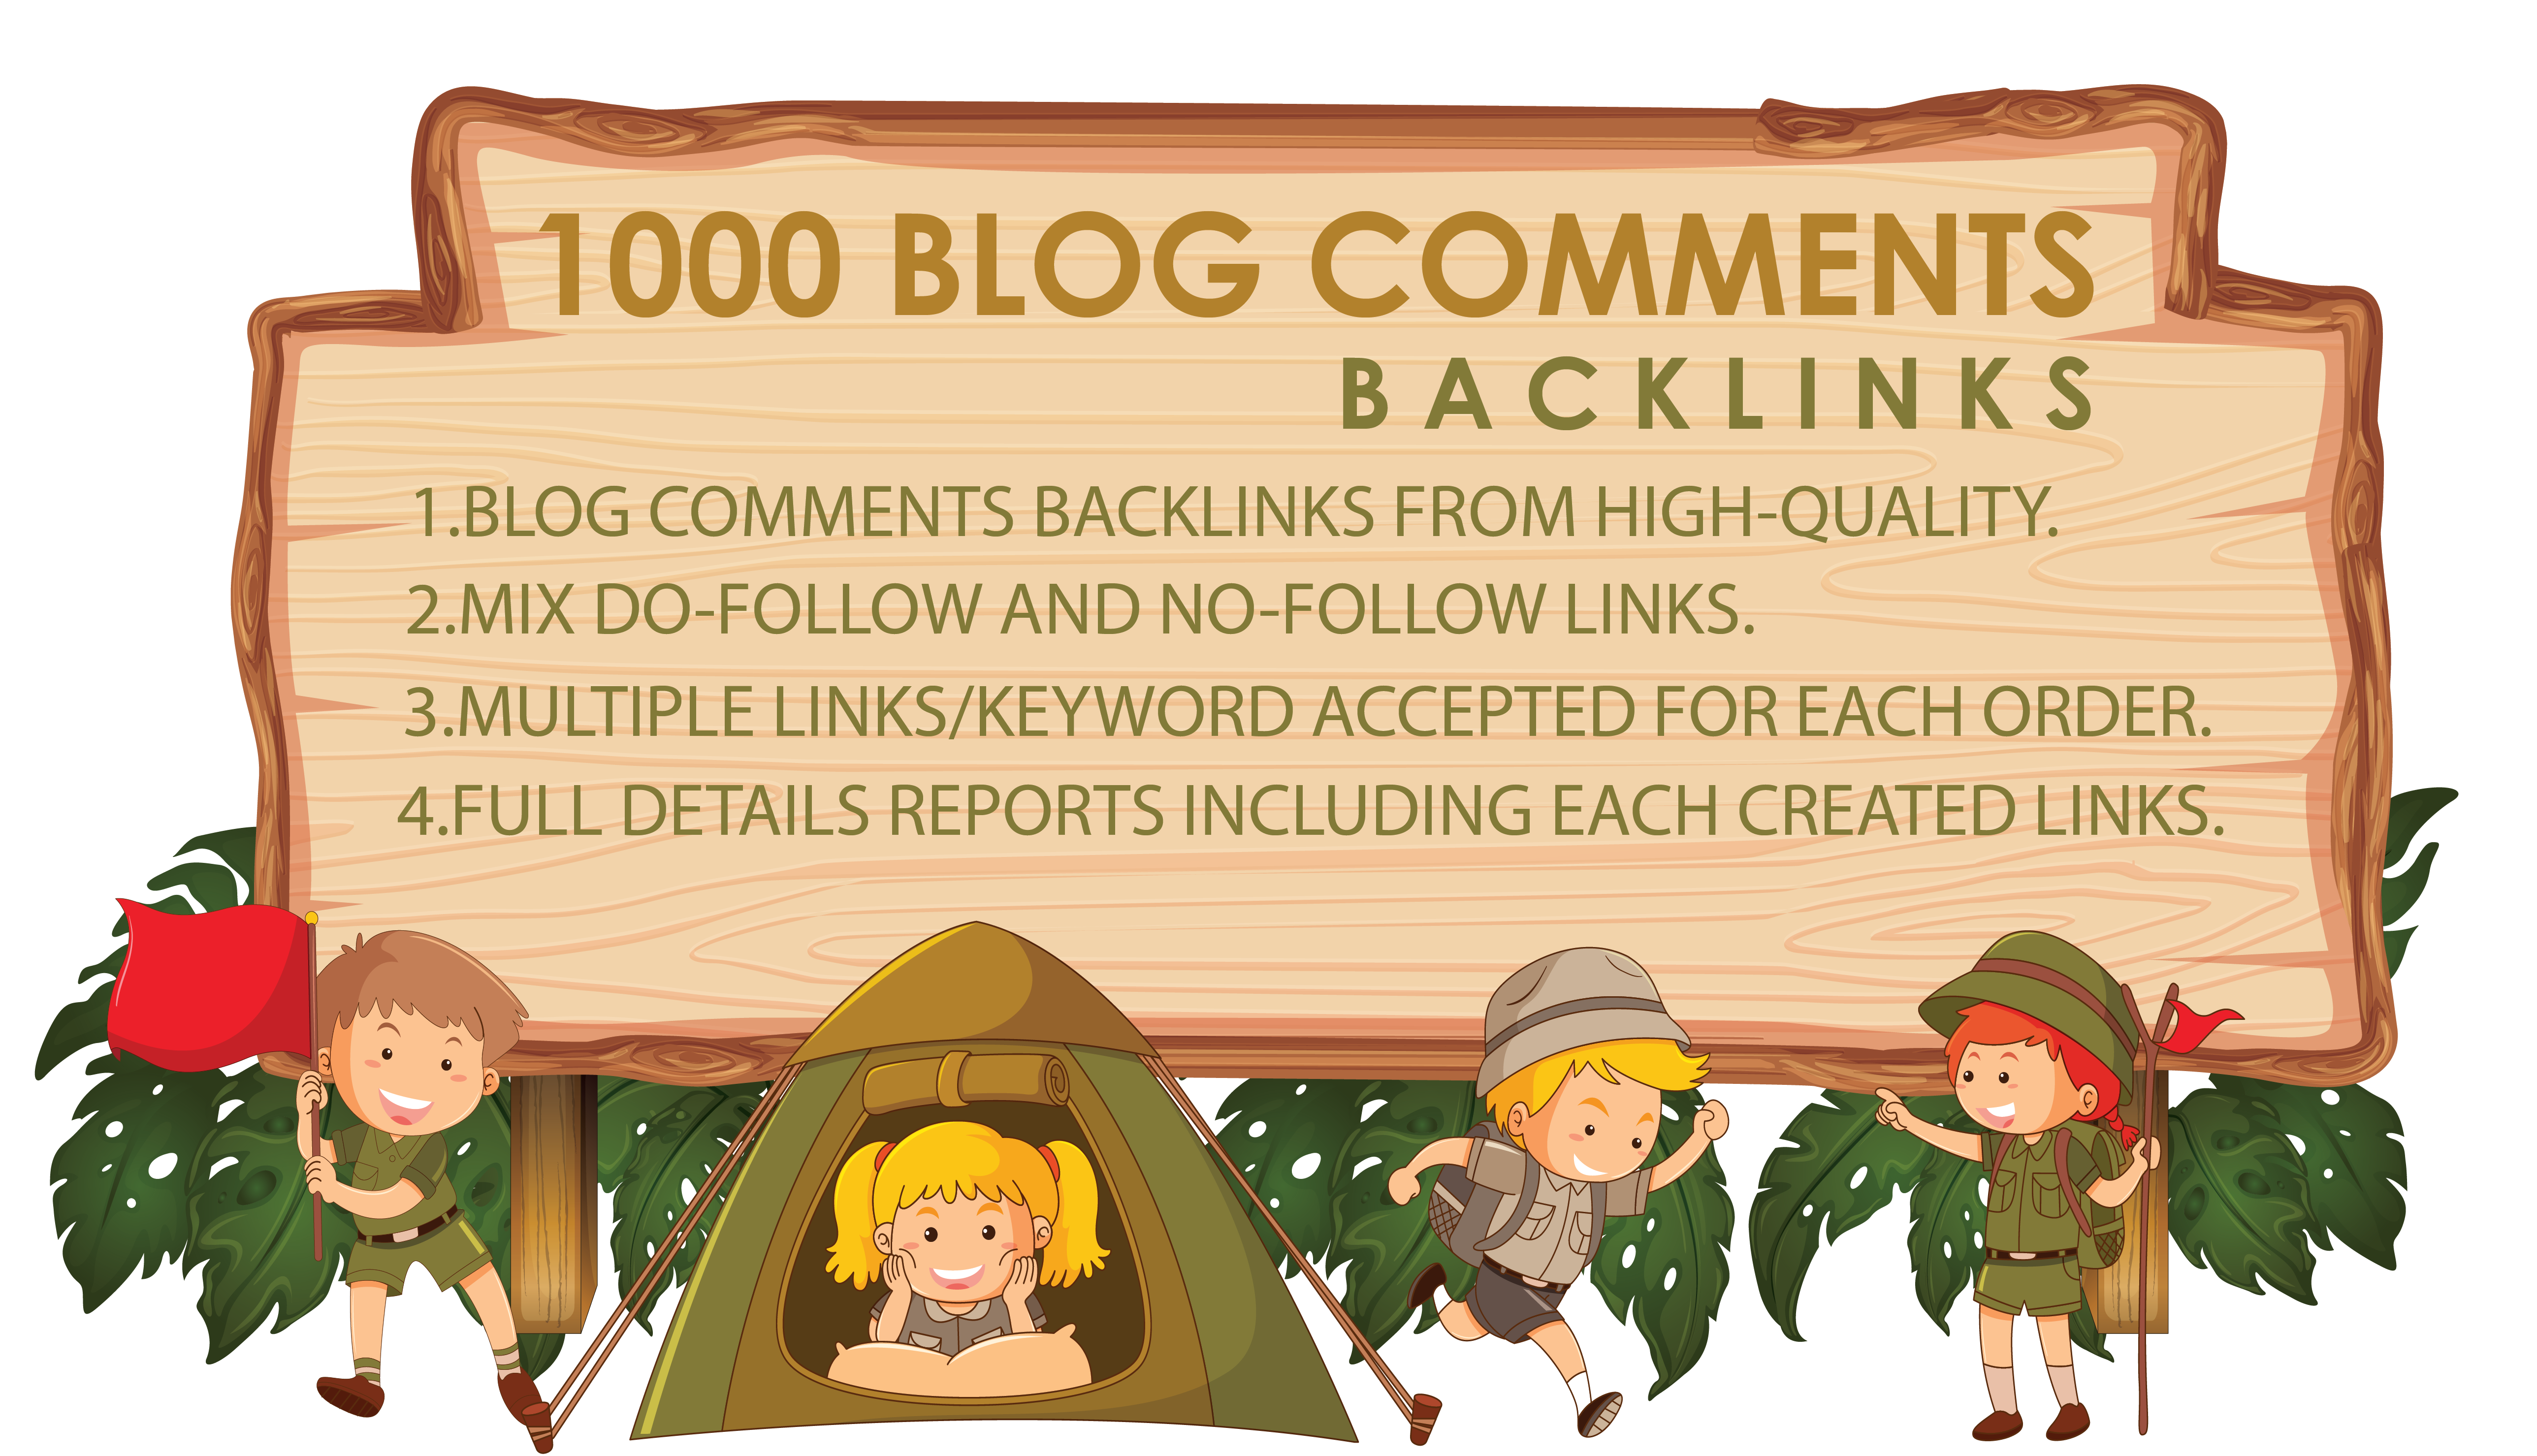 Provide 1000 Blog Comments Backlinks From High Qualit...